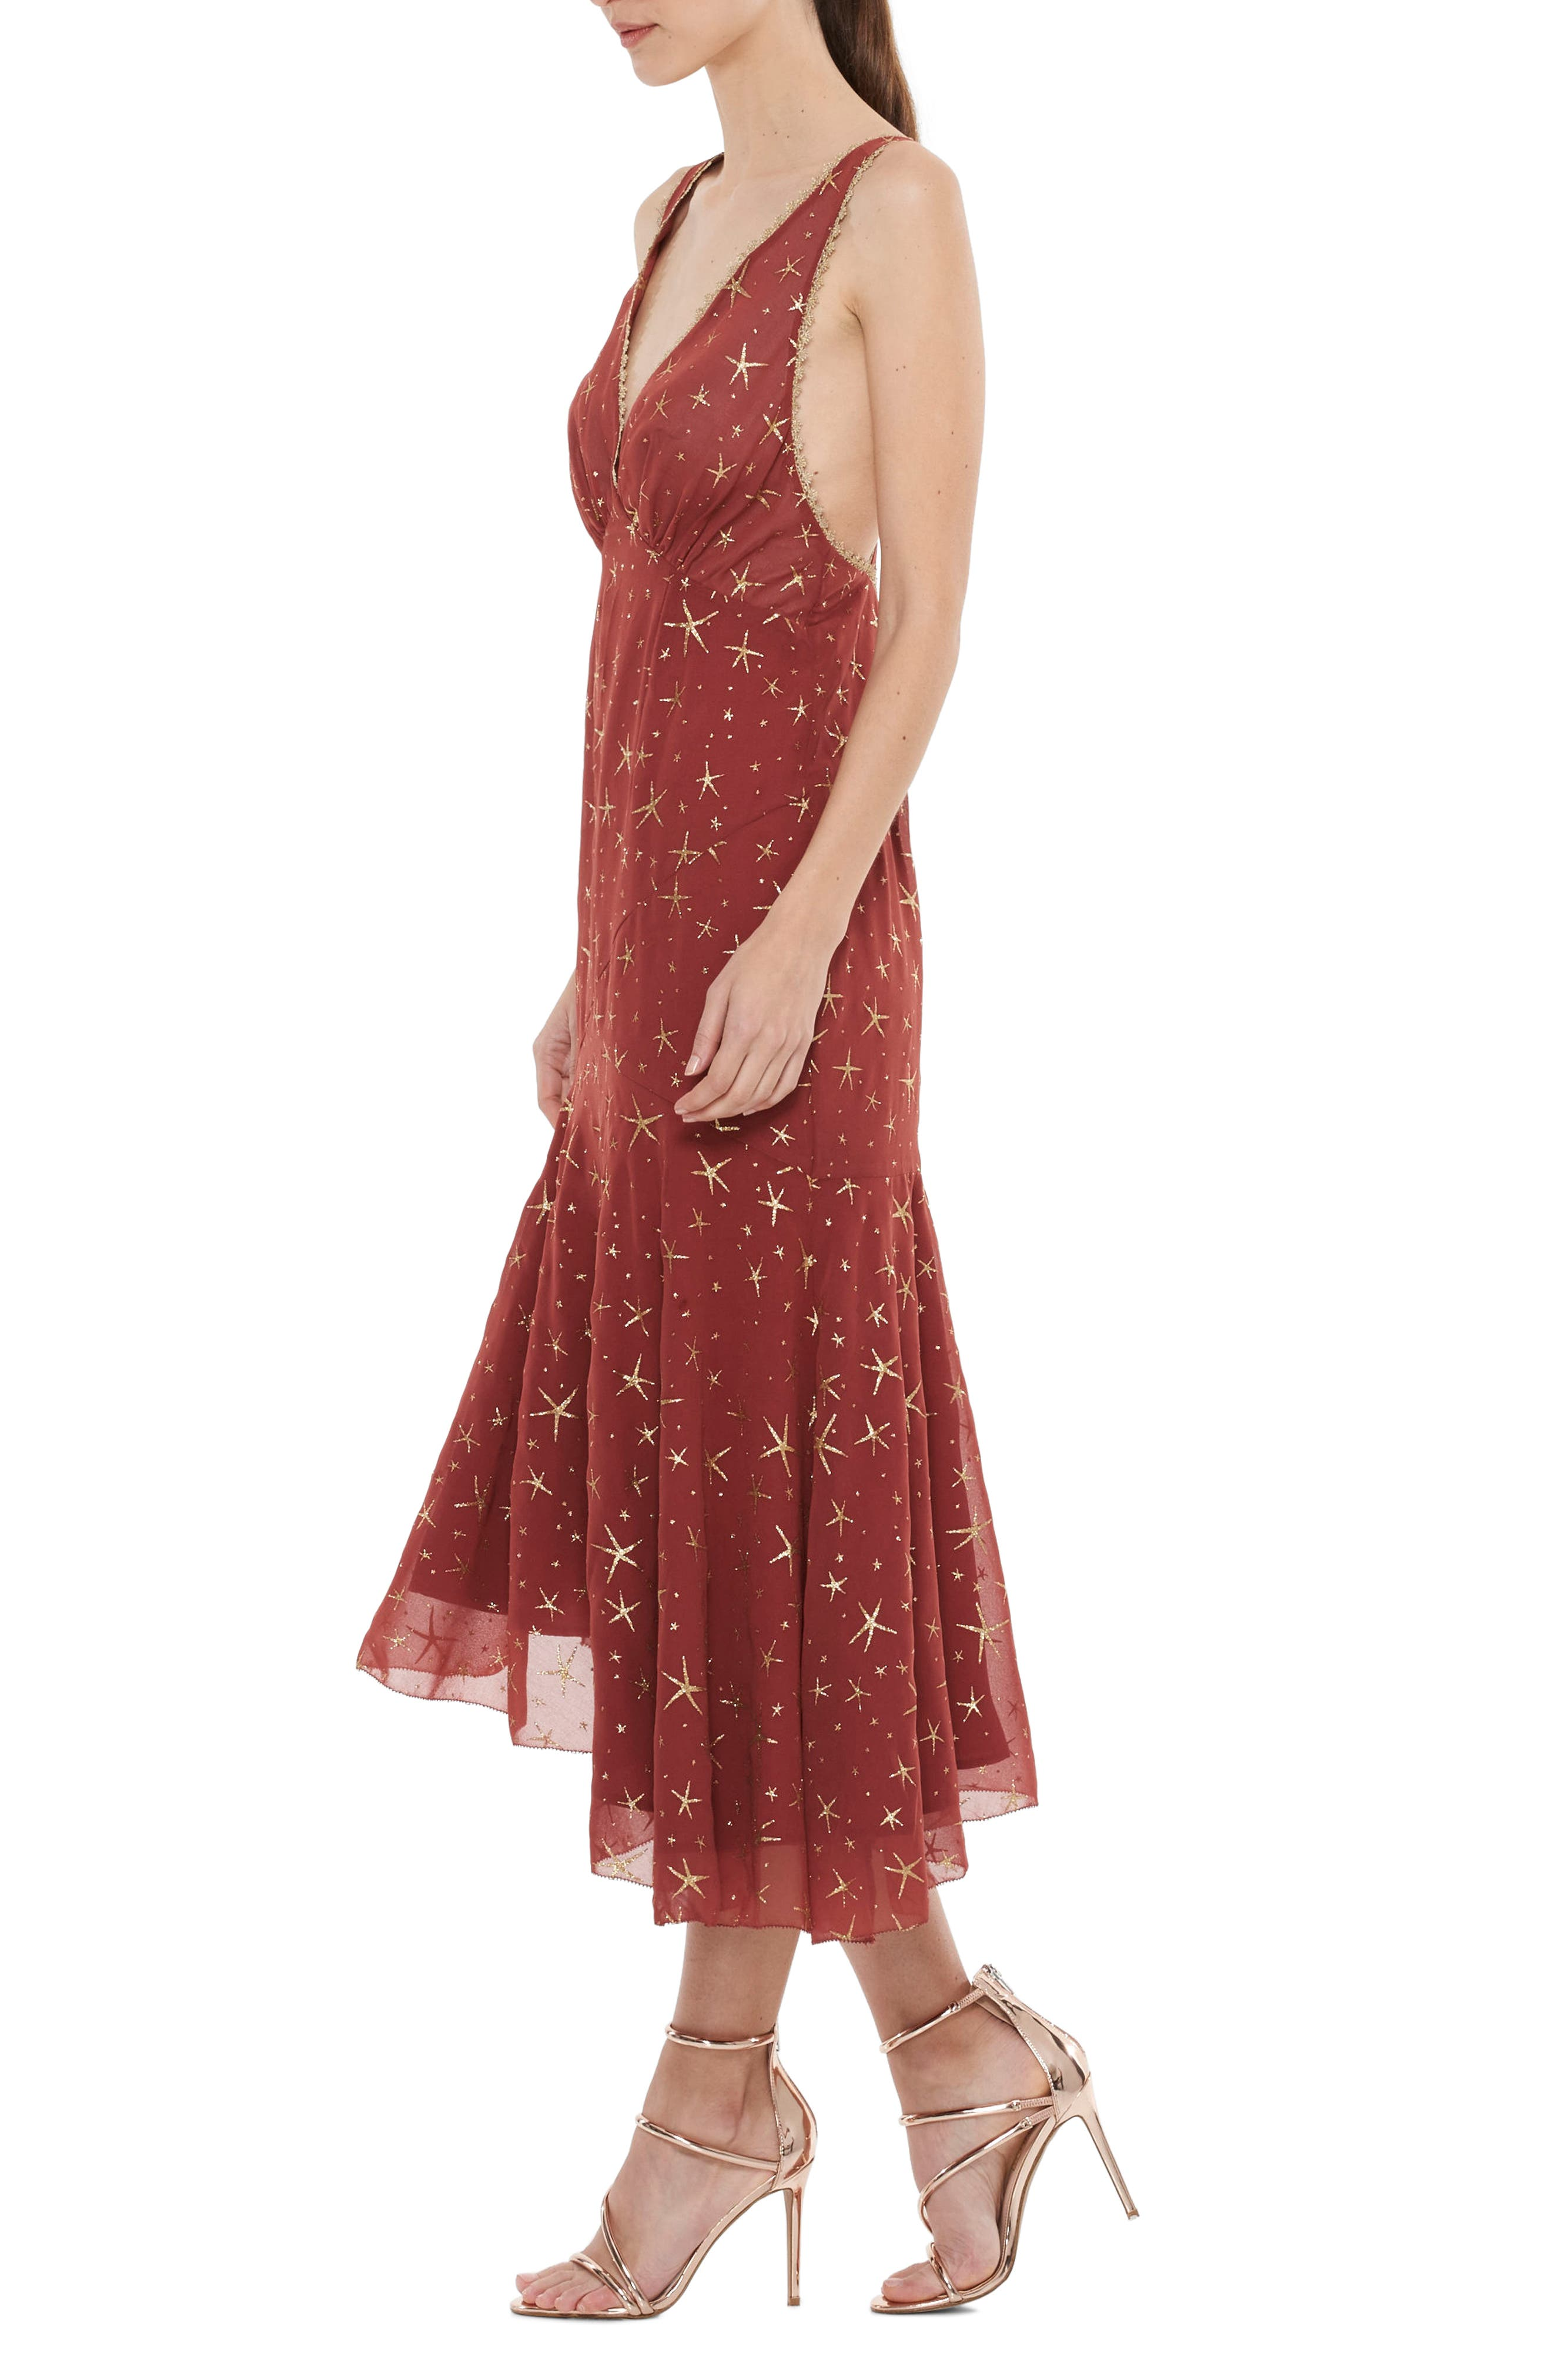 Stay Together Asymmetric Midi Dress,                             Alternate thumbnail 3, color,                             Wine And Gold